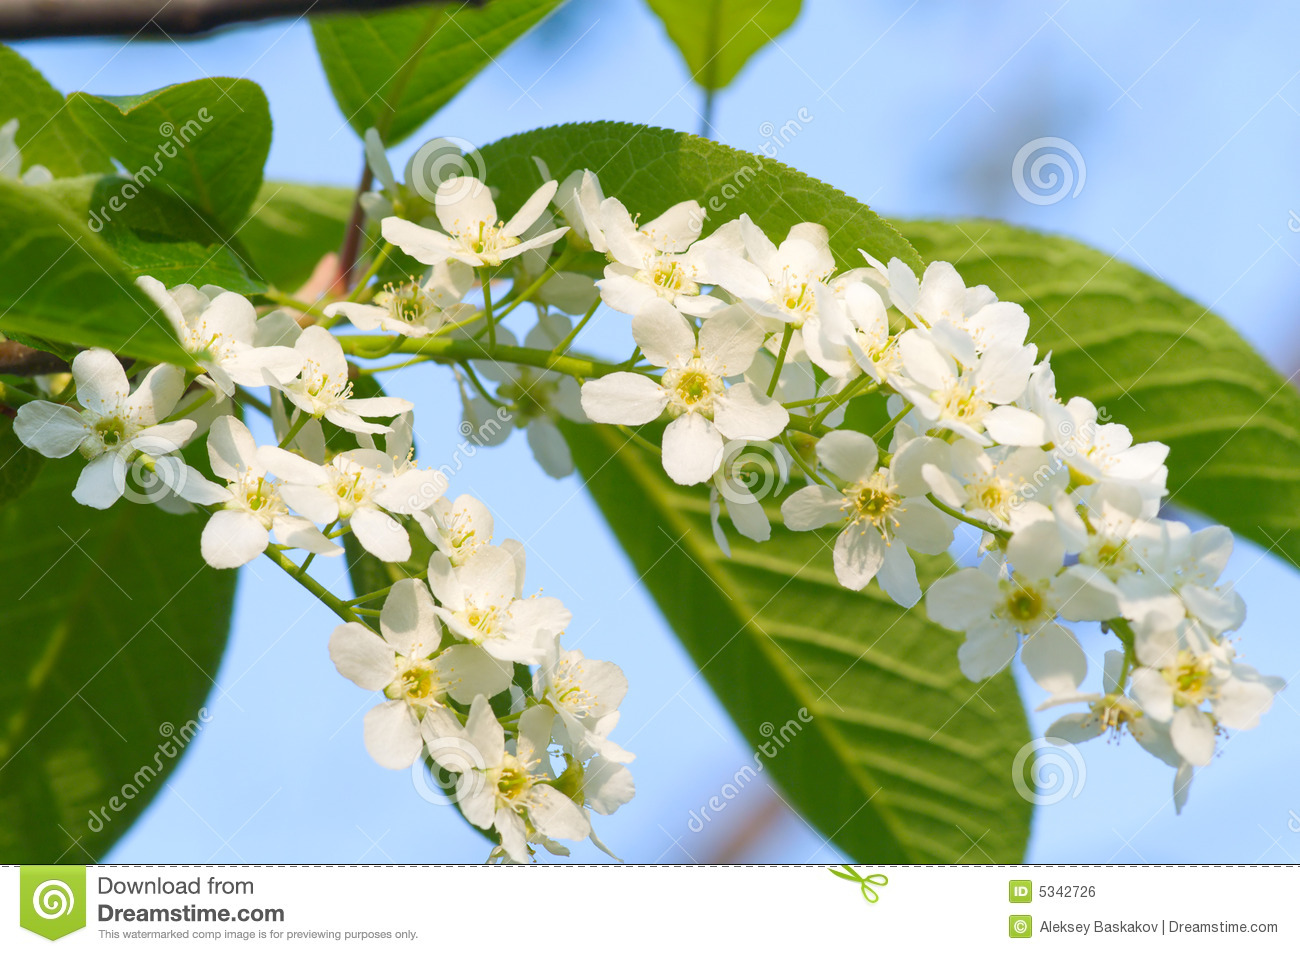 Bird cherry blossoms with leafs on blue sky